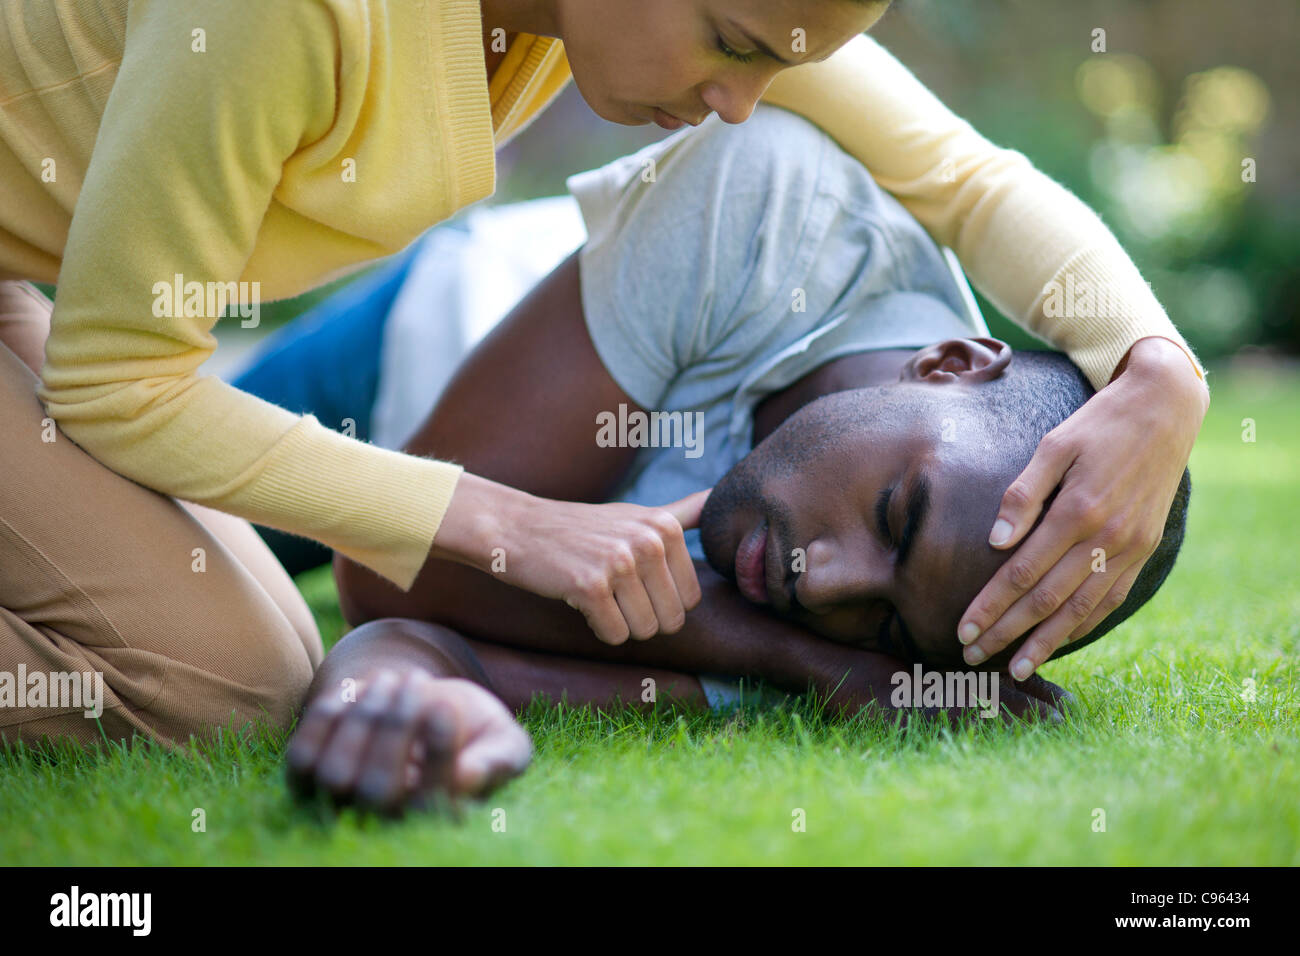 Recovery position. Man being placed in the recovery position. - Stock Image